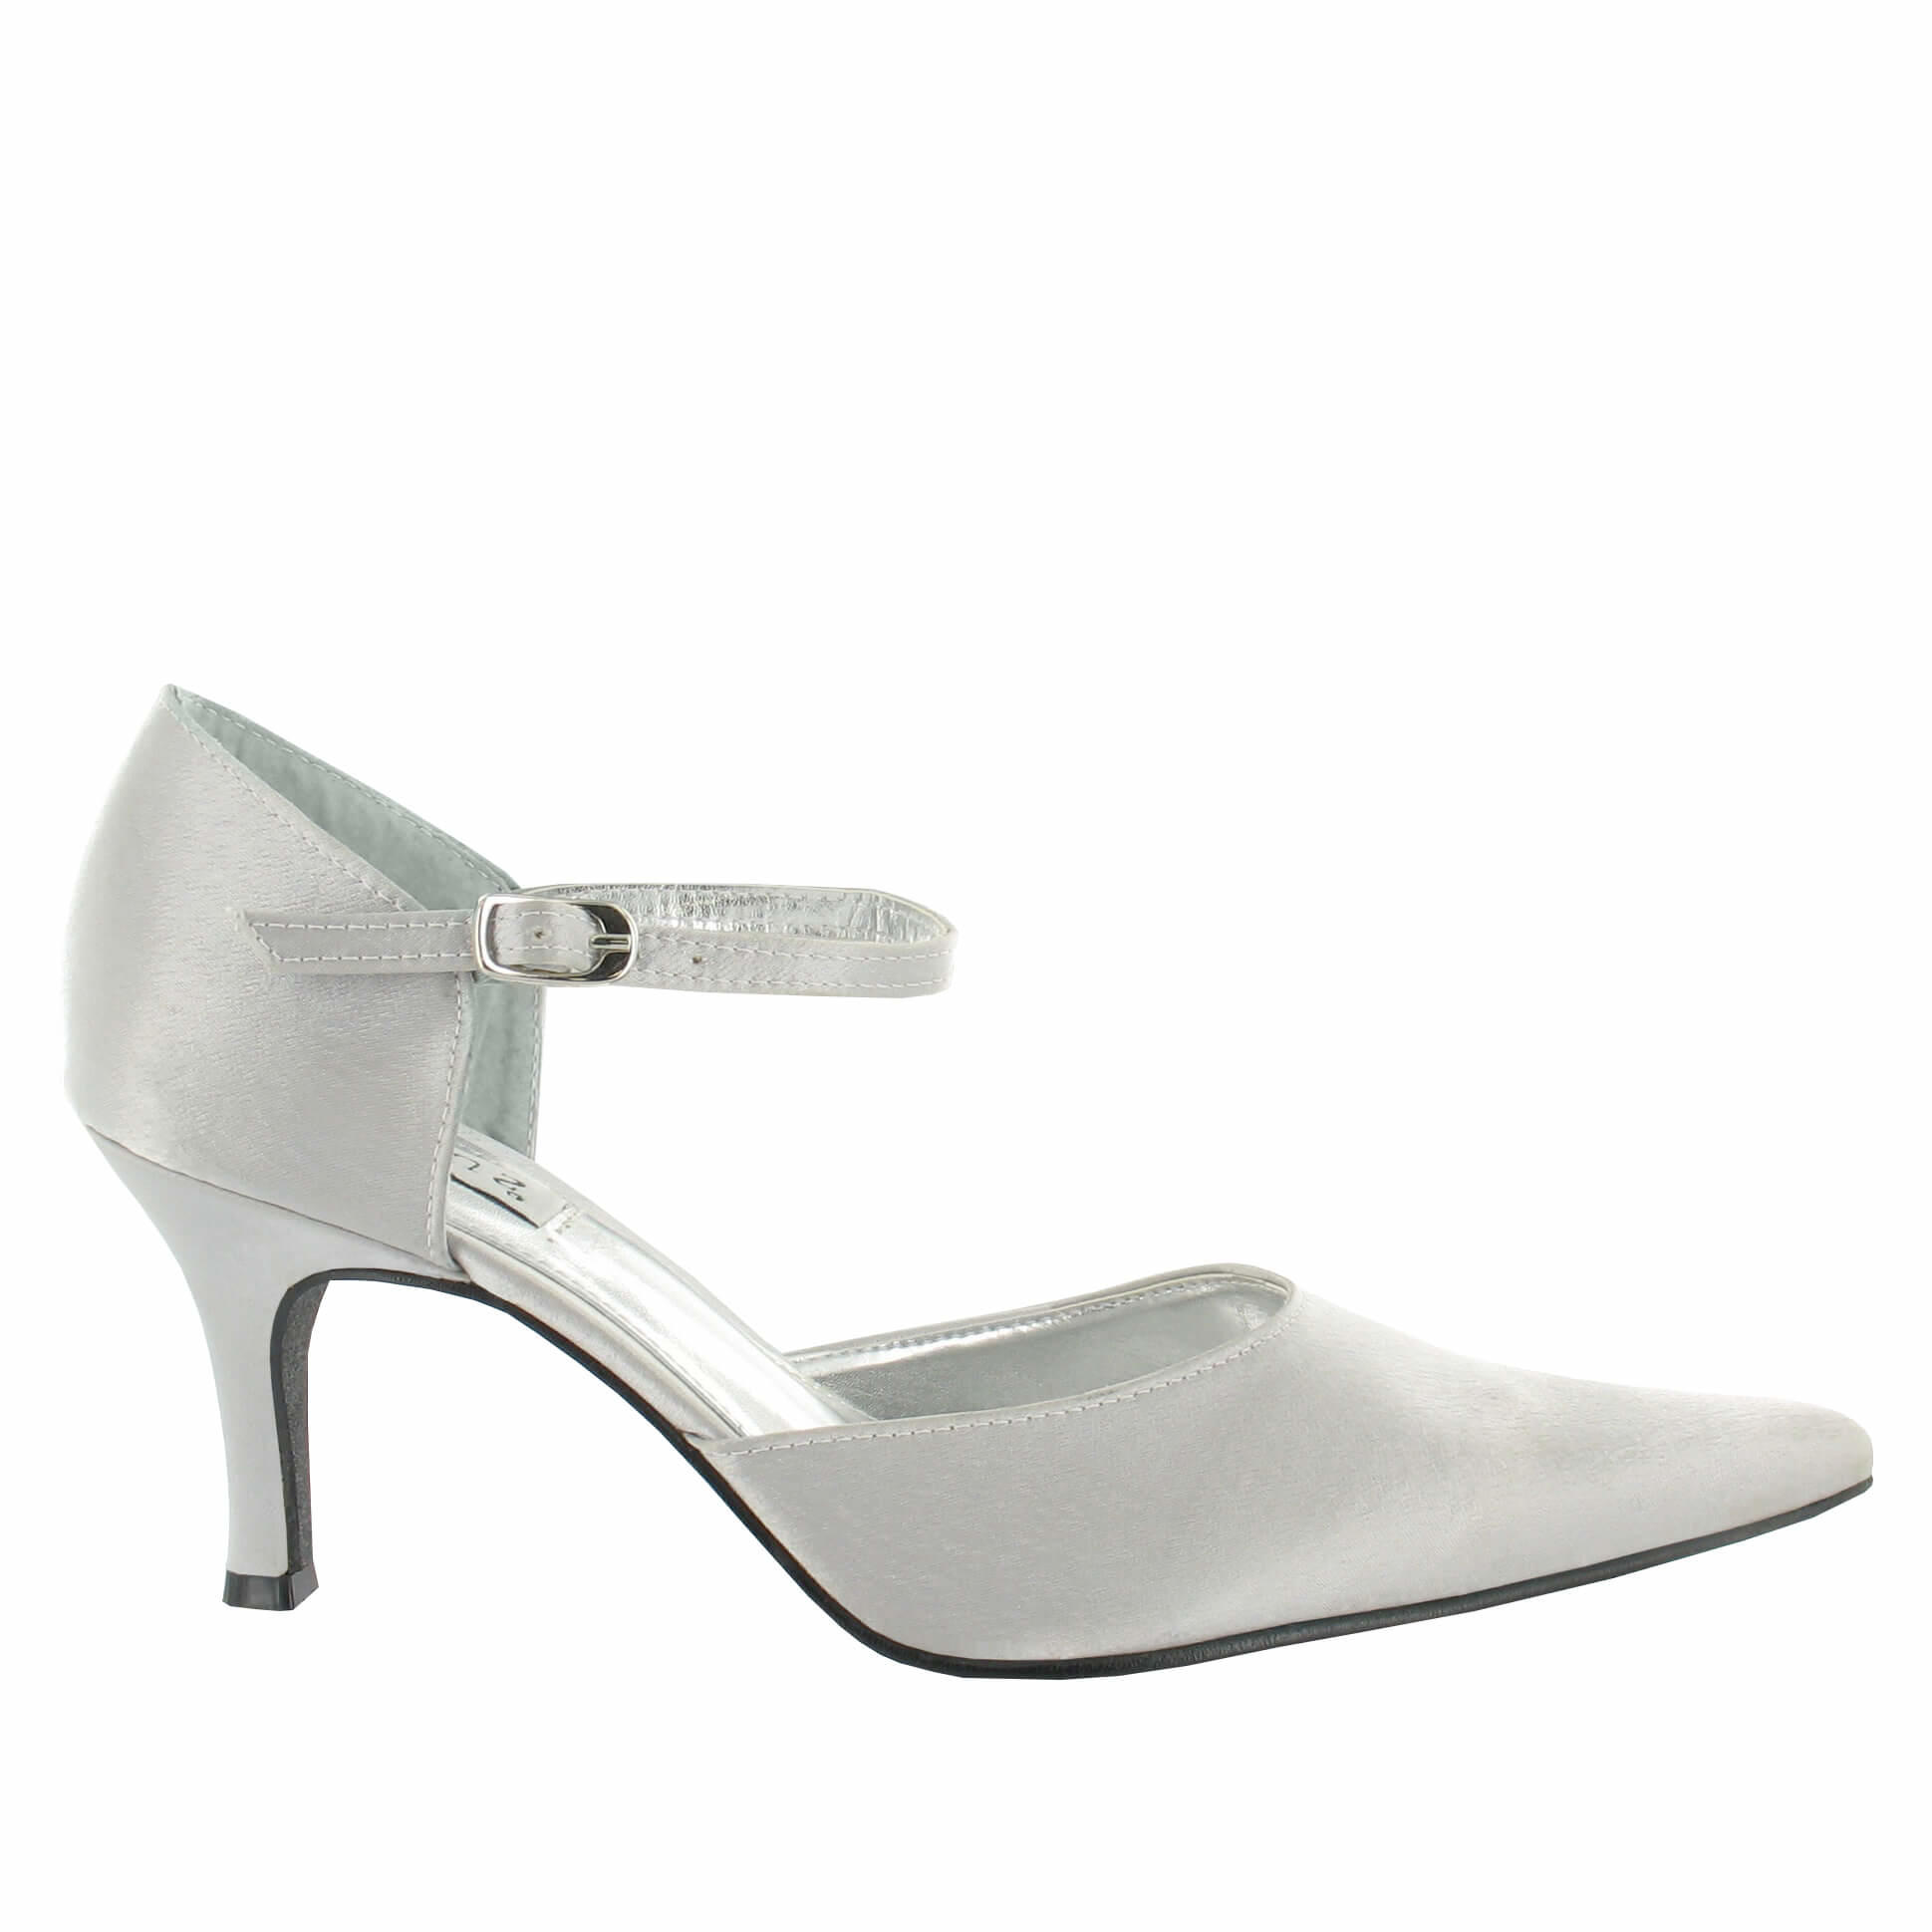 Laura in Light Grey/Silver